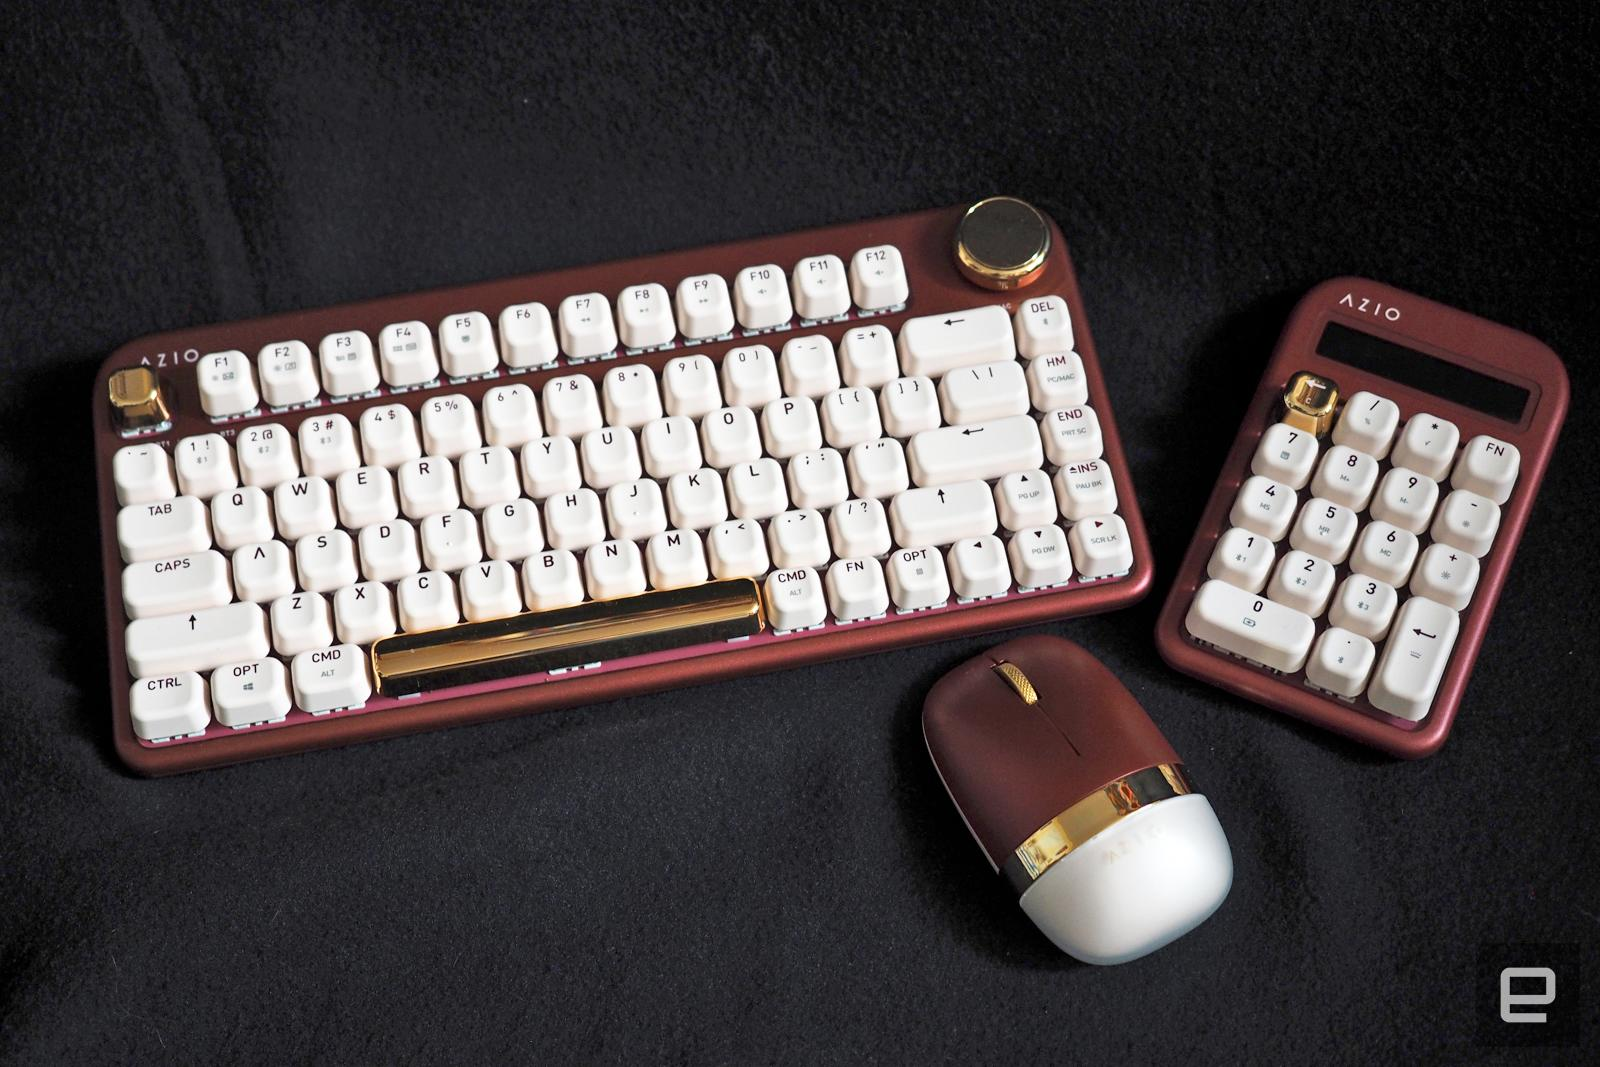 AZIO IZO keyboard and mouse peripherals photographed on a black cloth background.